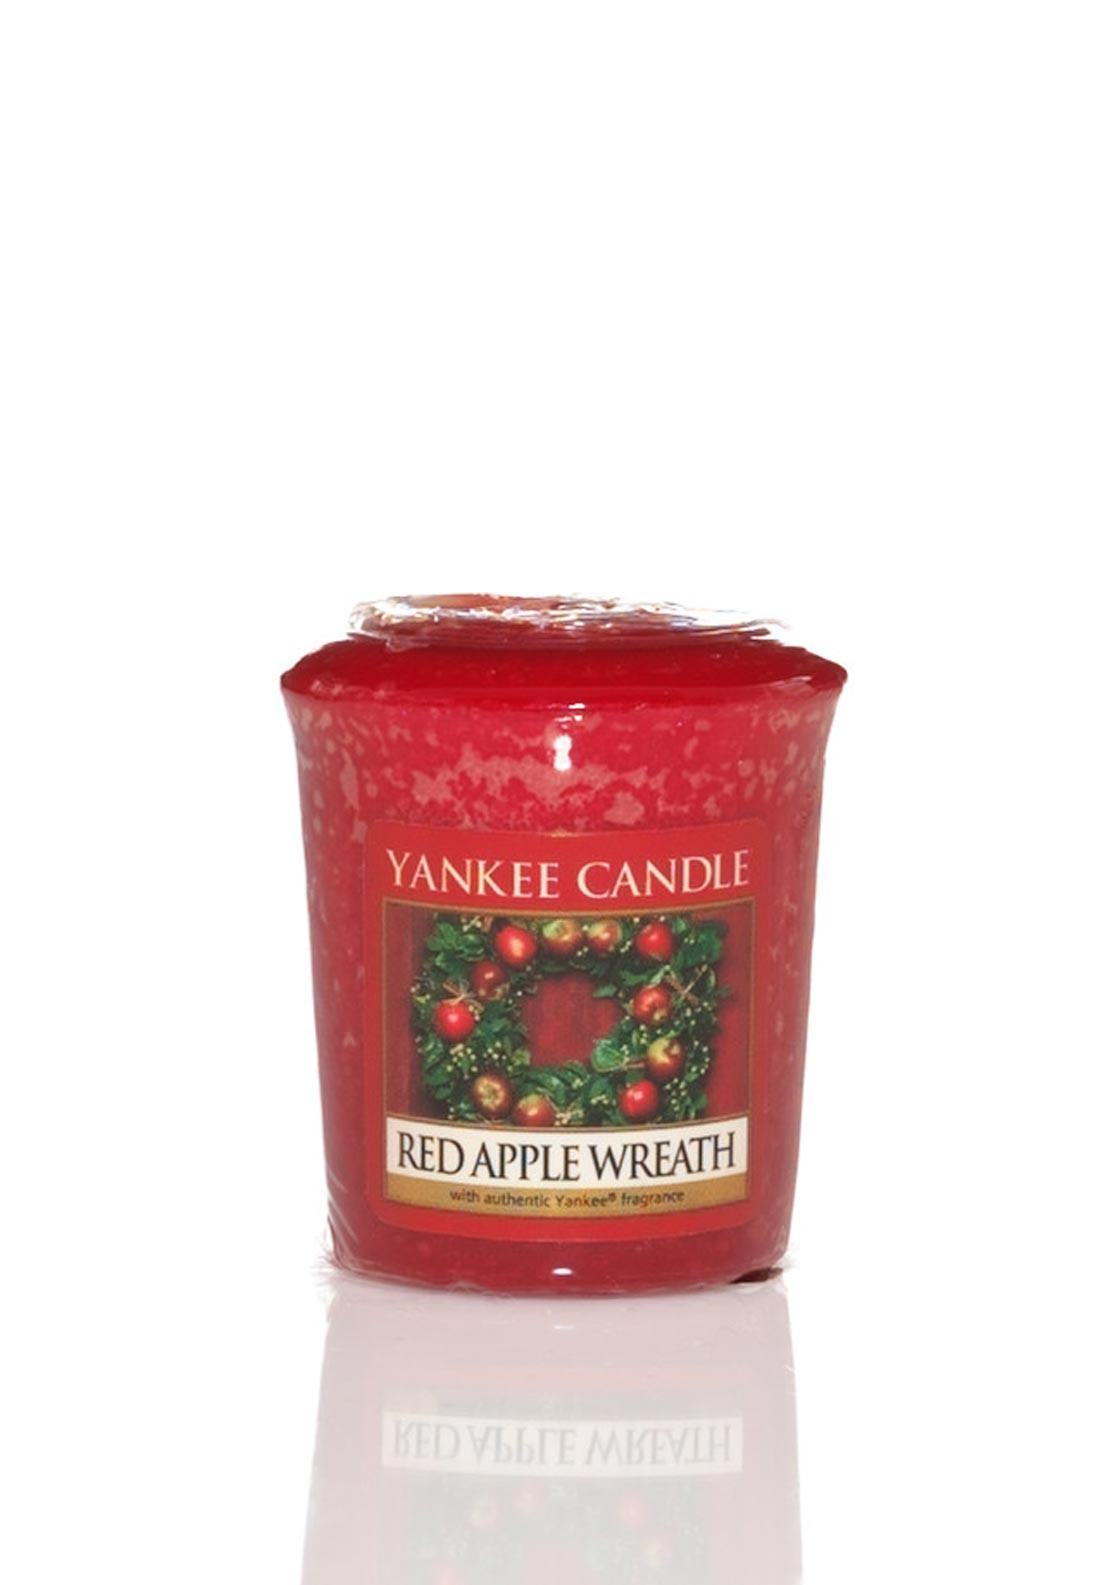 Yankee Candle Sampler Votive Candle, Red Apple Wreath